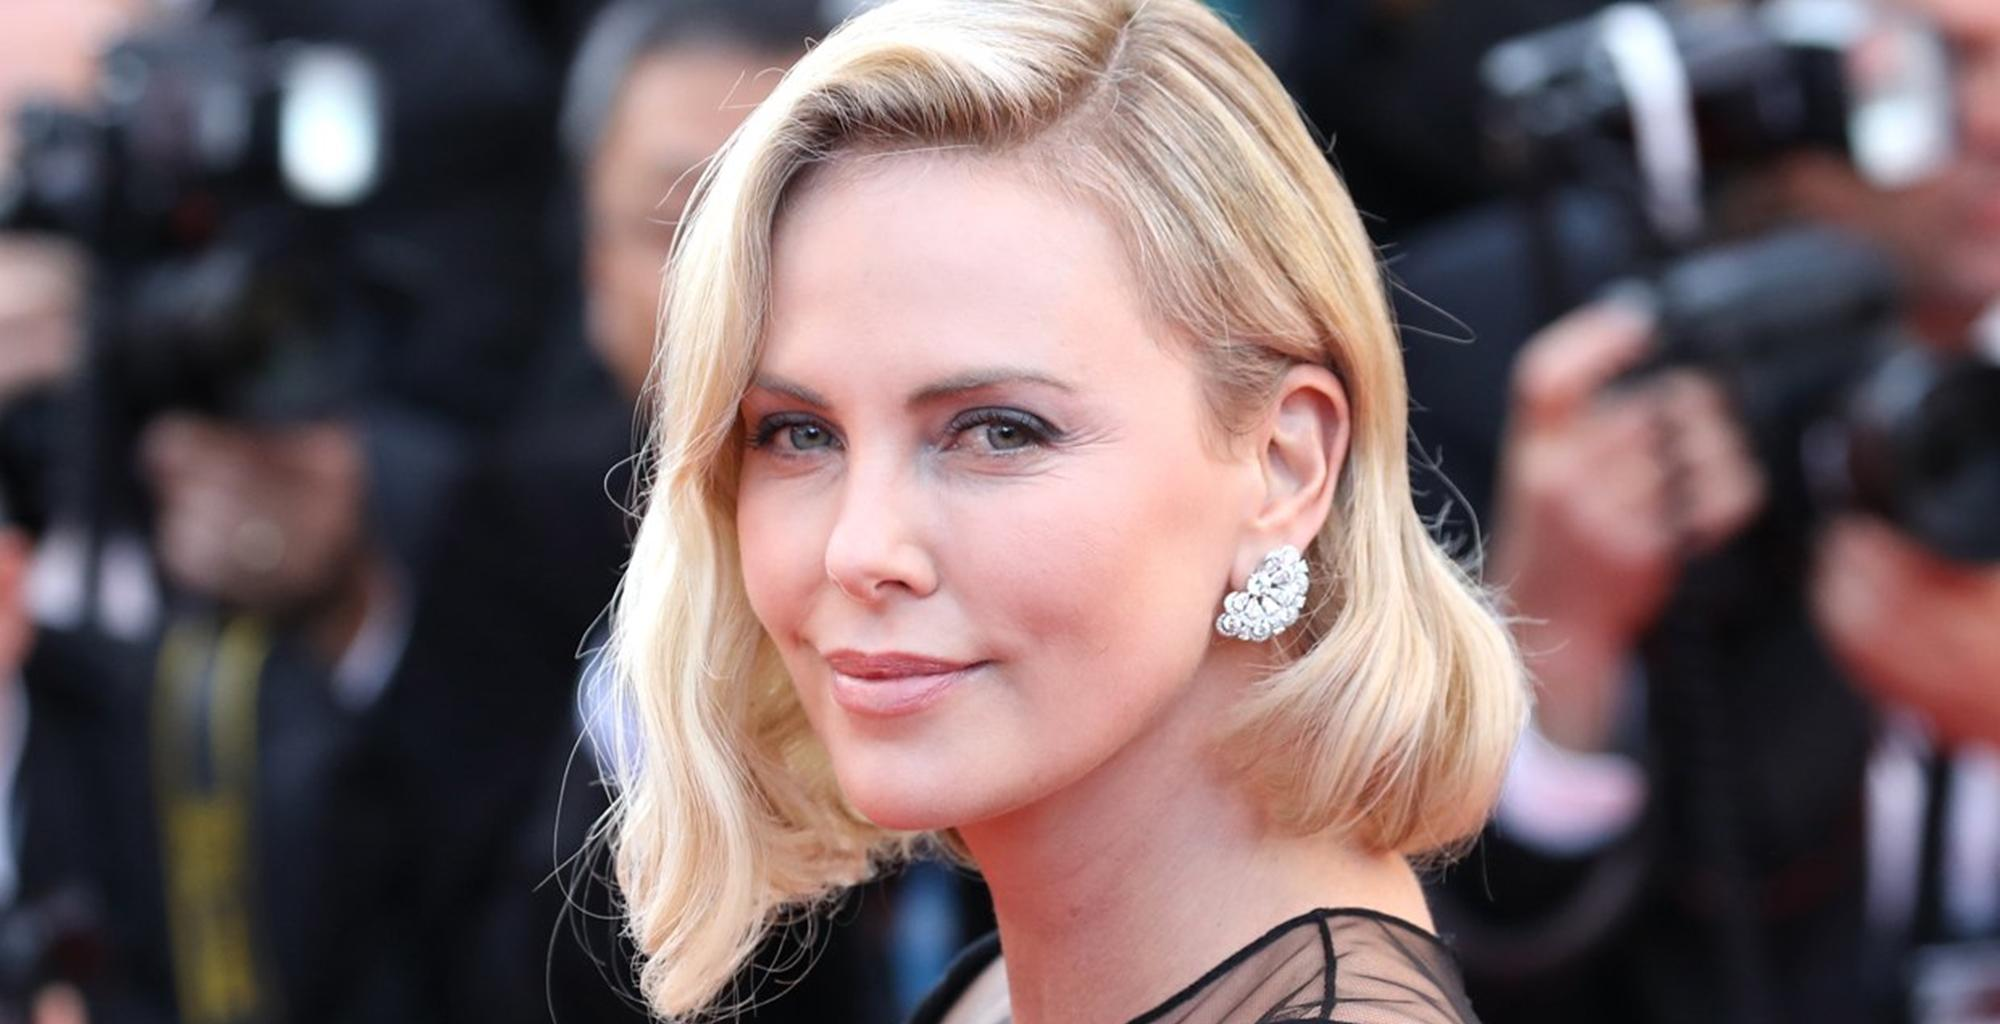 Charlize Theron Posts Photo Of Daughter Jackson In Red Dress During Vacation -- The Reactions Took An Unexpected Turn